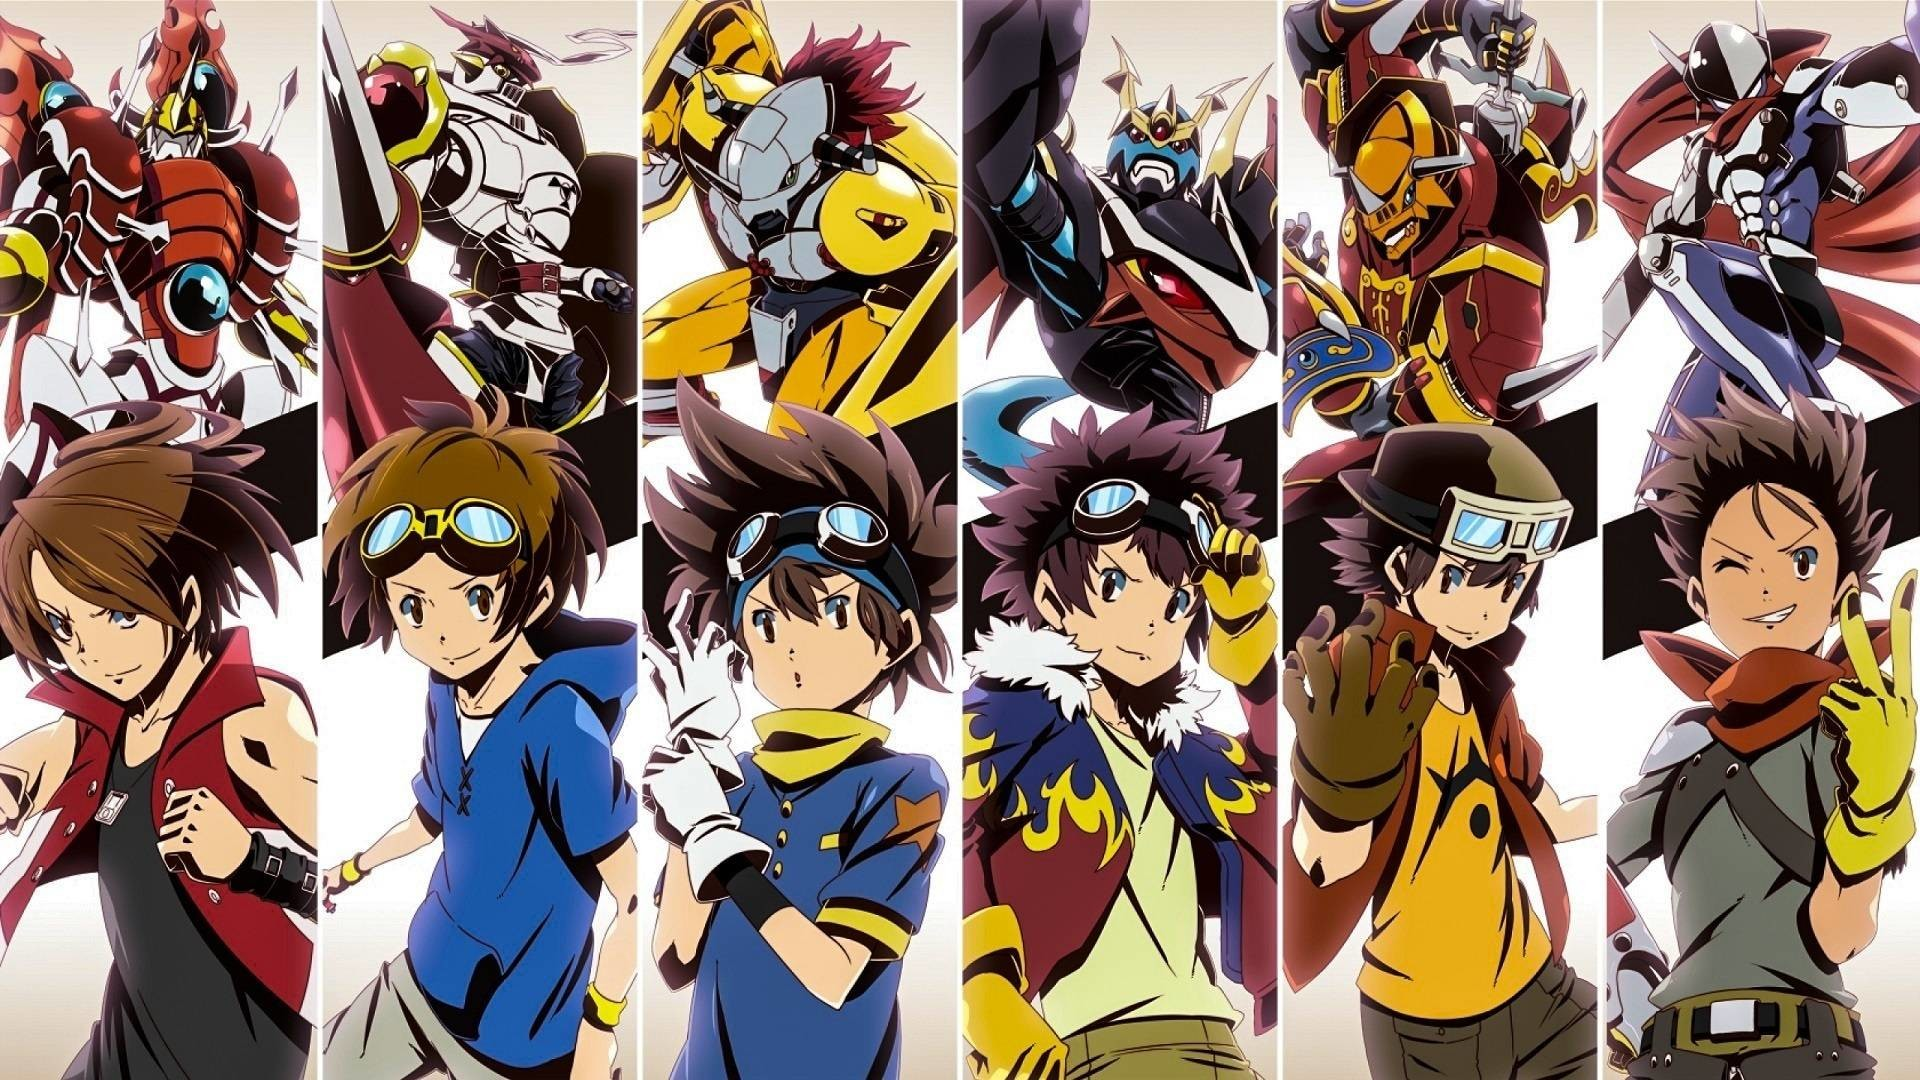 Digimon Wallpaper HD 66 images